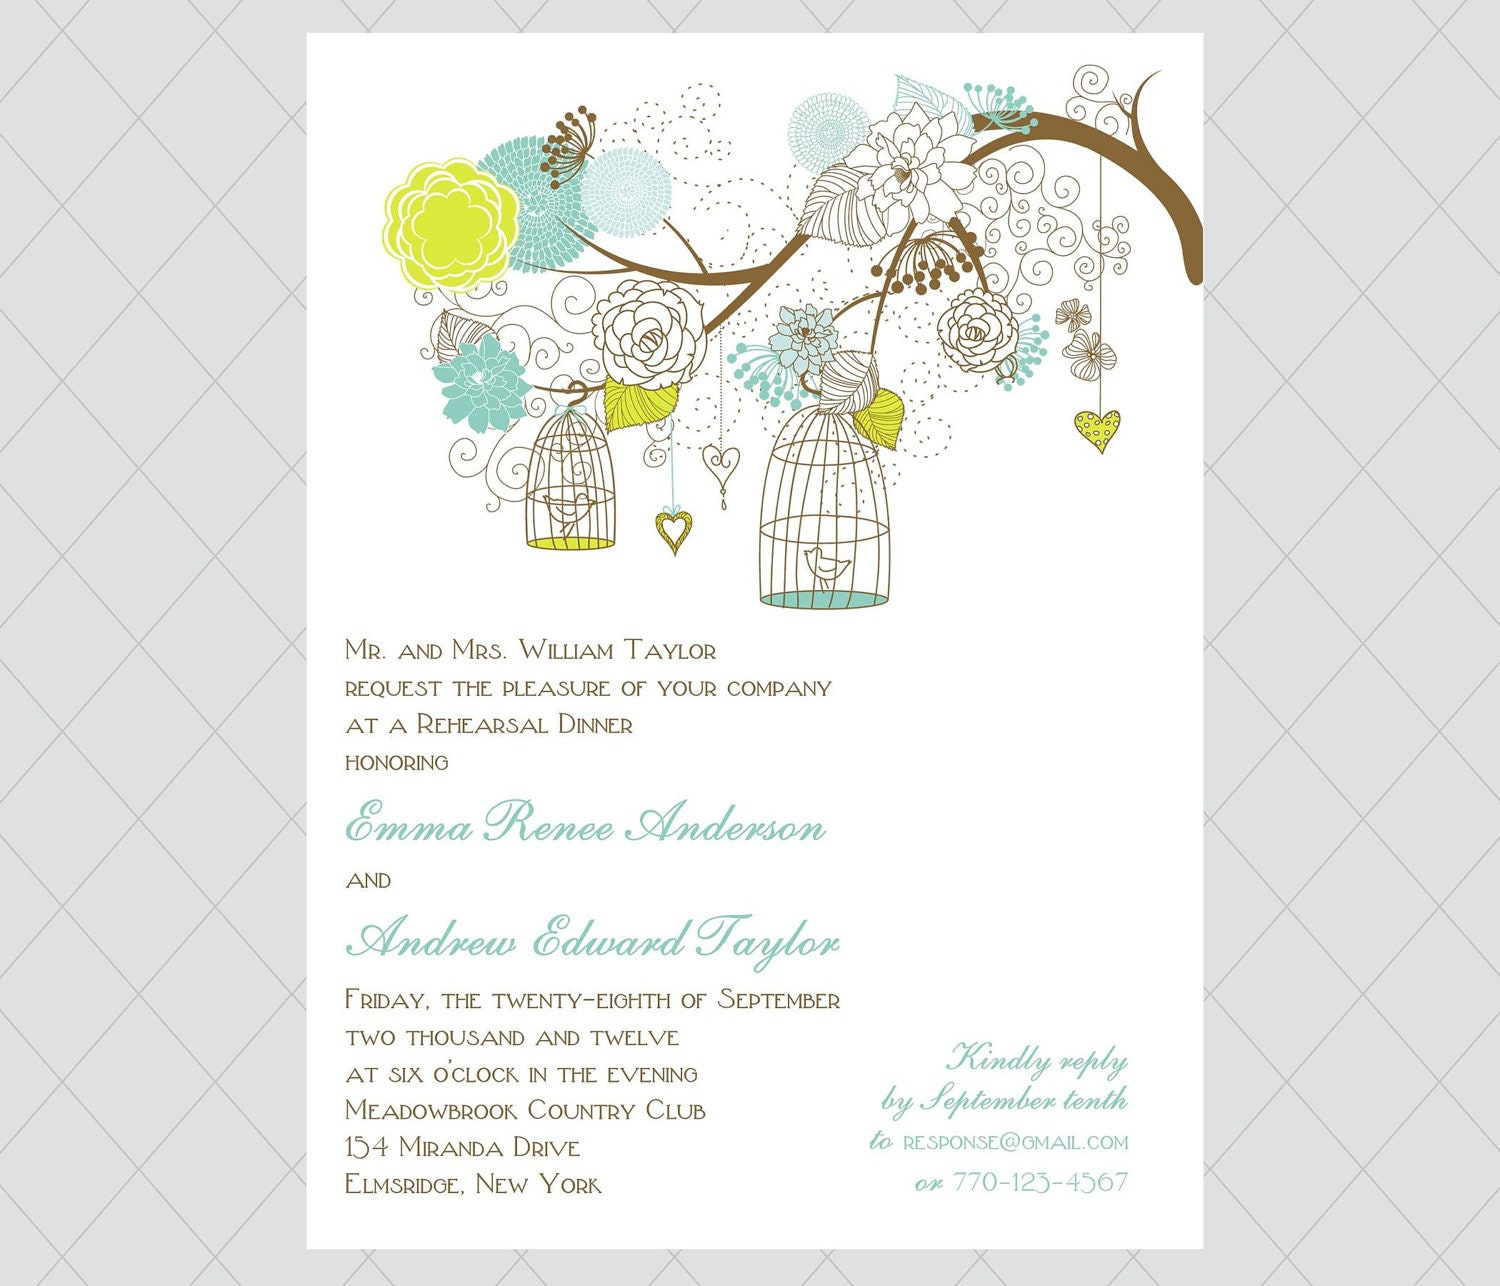 Rehearsal Dinner Invitations Etsy absolutely amazing ideas for your invitation example